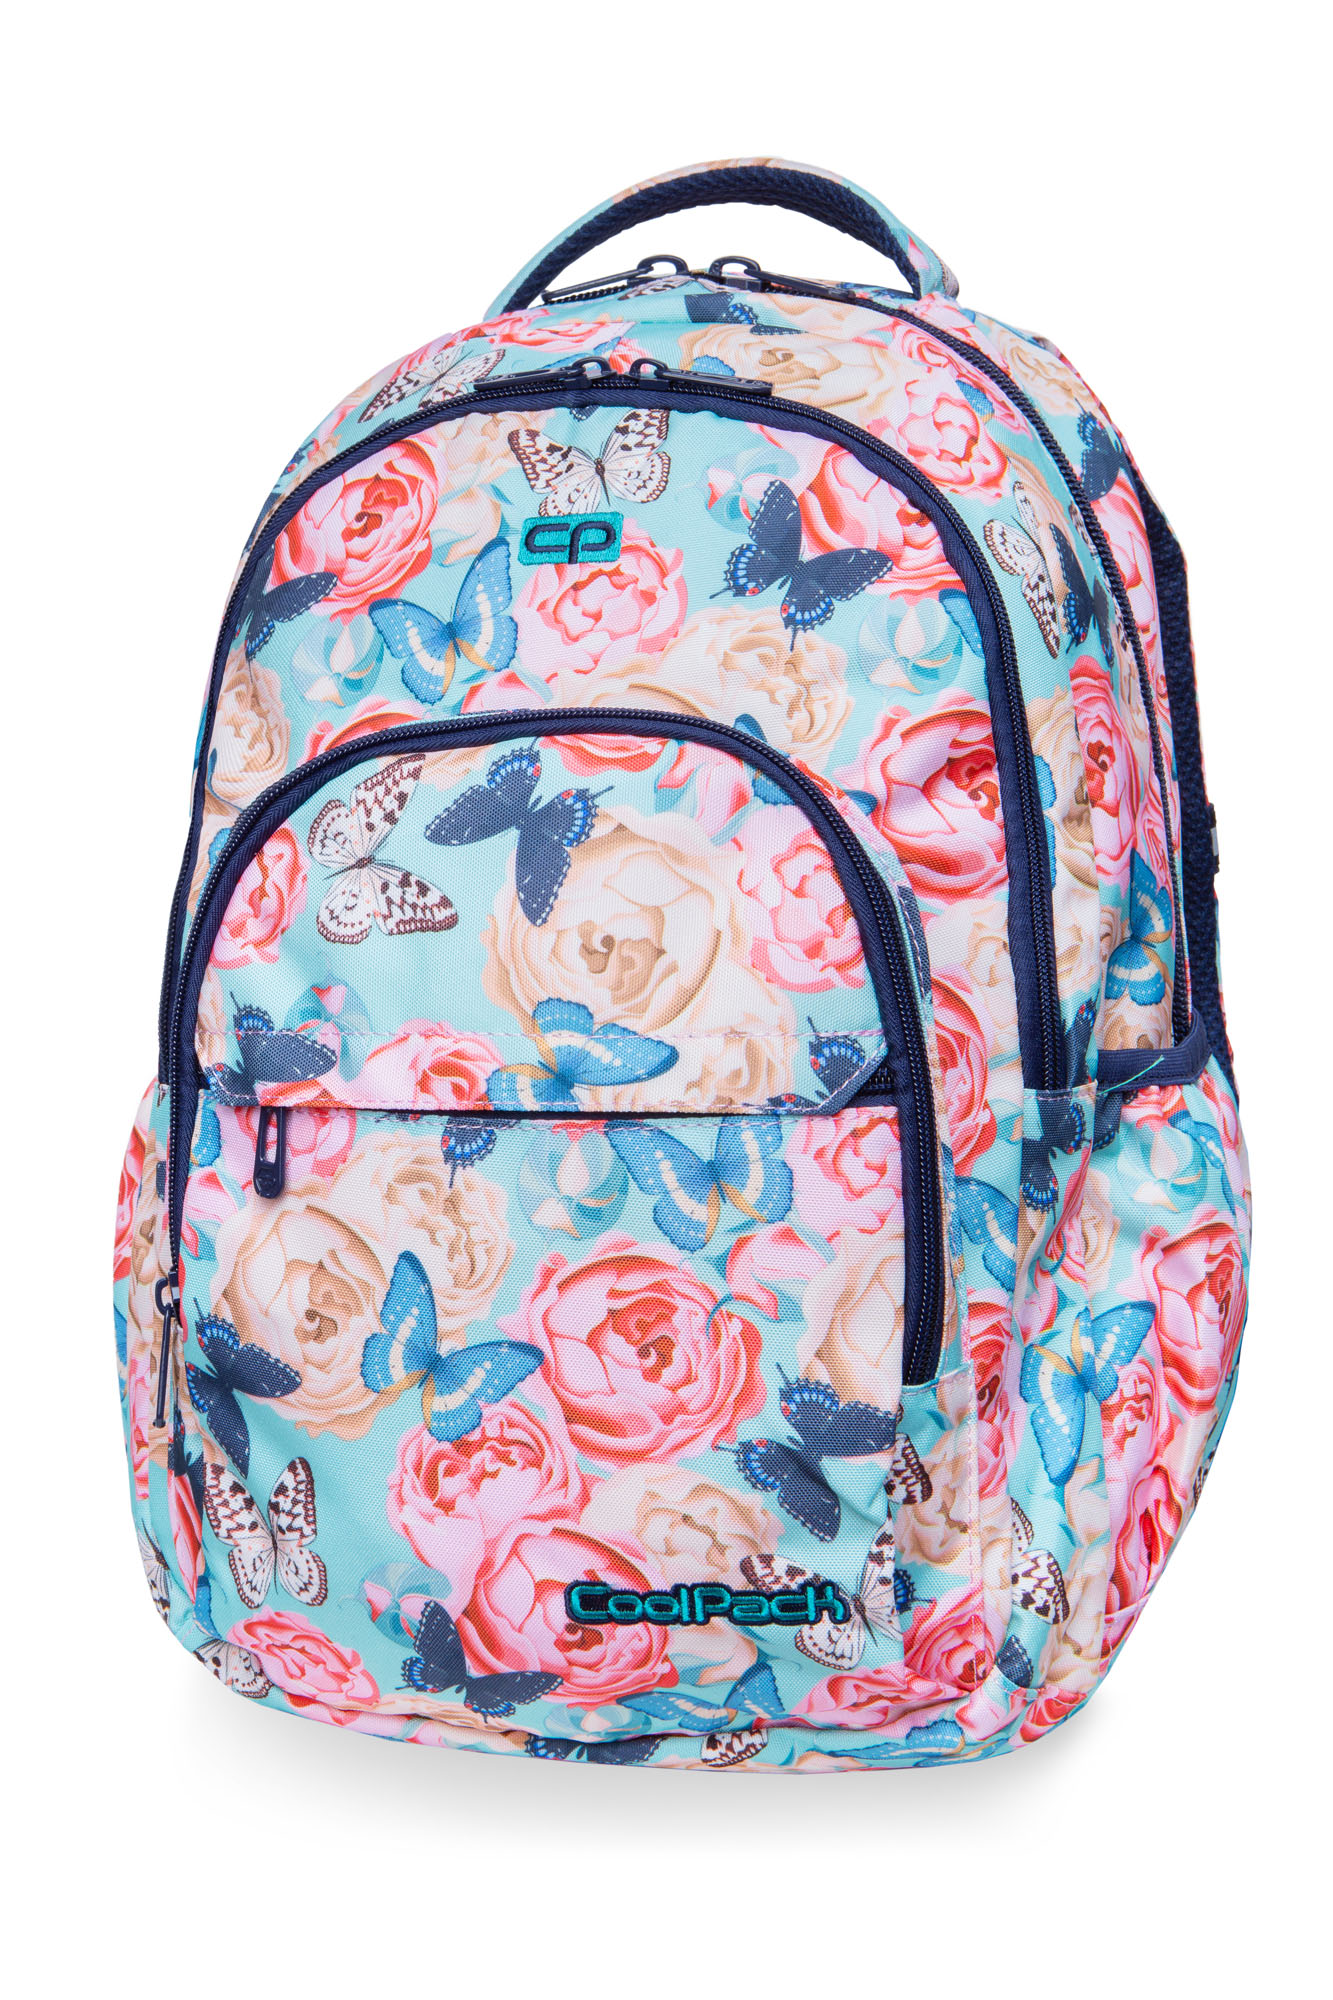 Coolpack - basic plus - youth backpack - butterflies